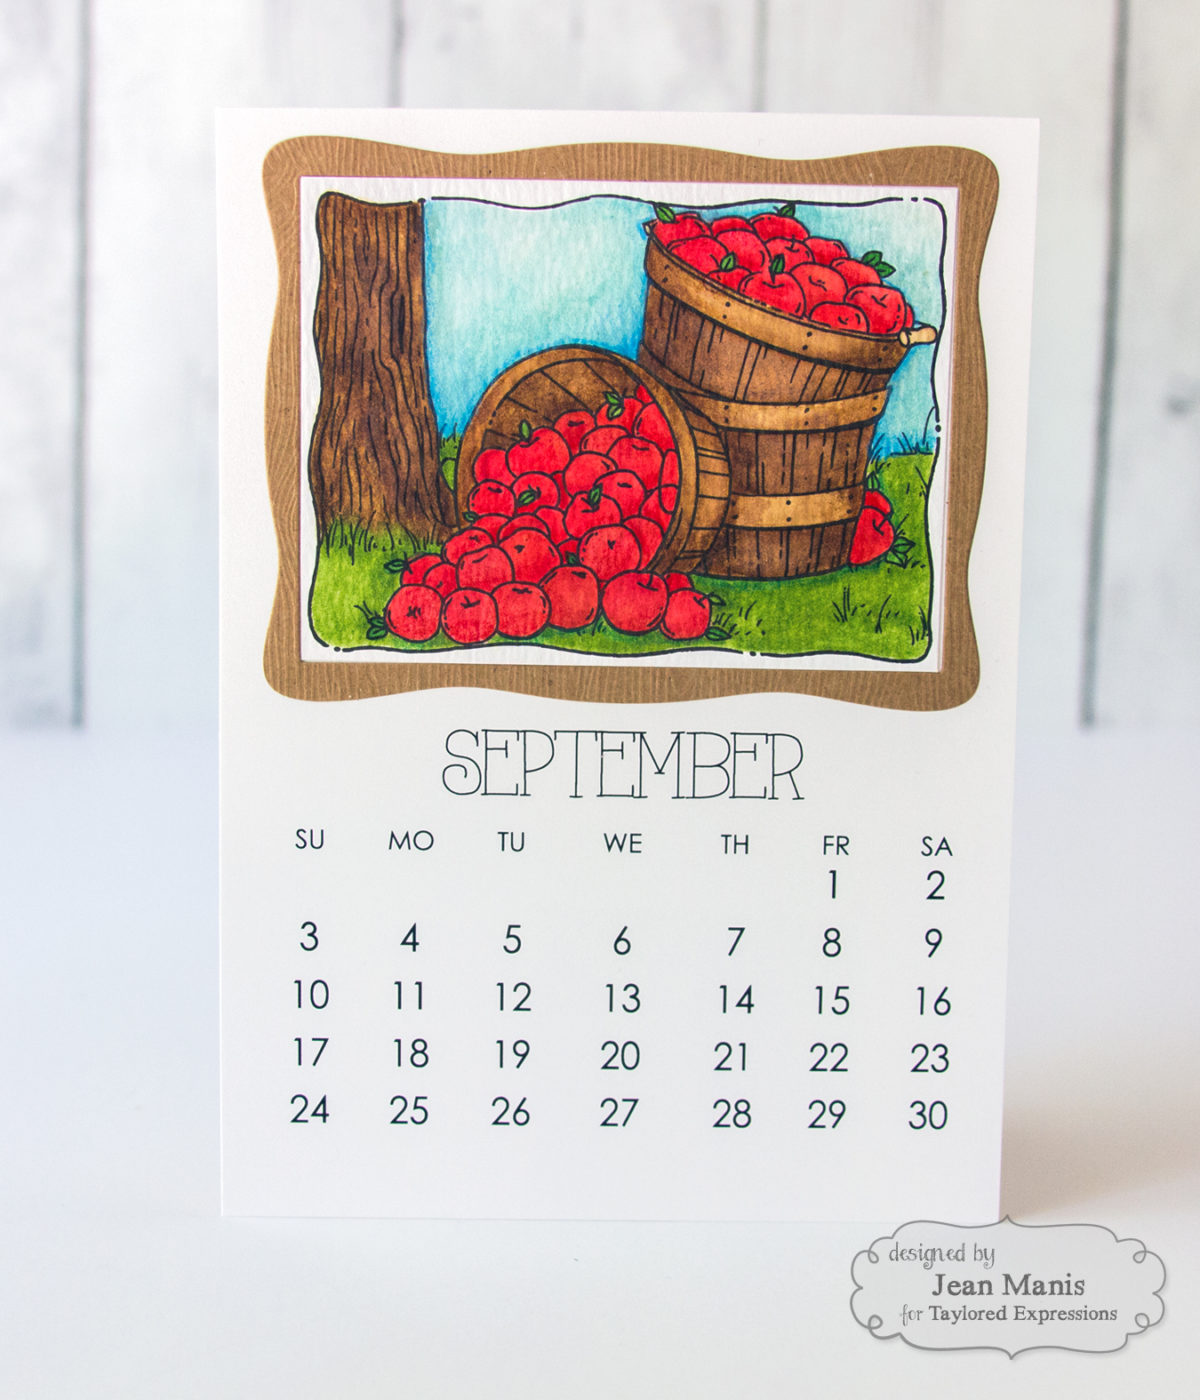 Taylored Expressions – September and October Watercolored Calendar Panels